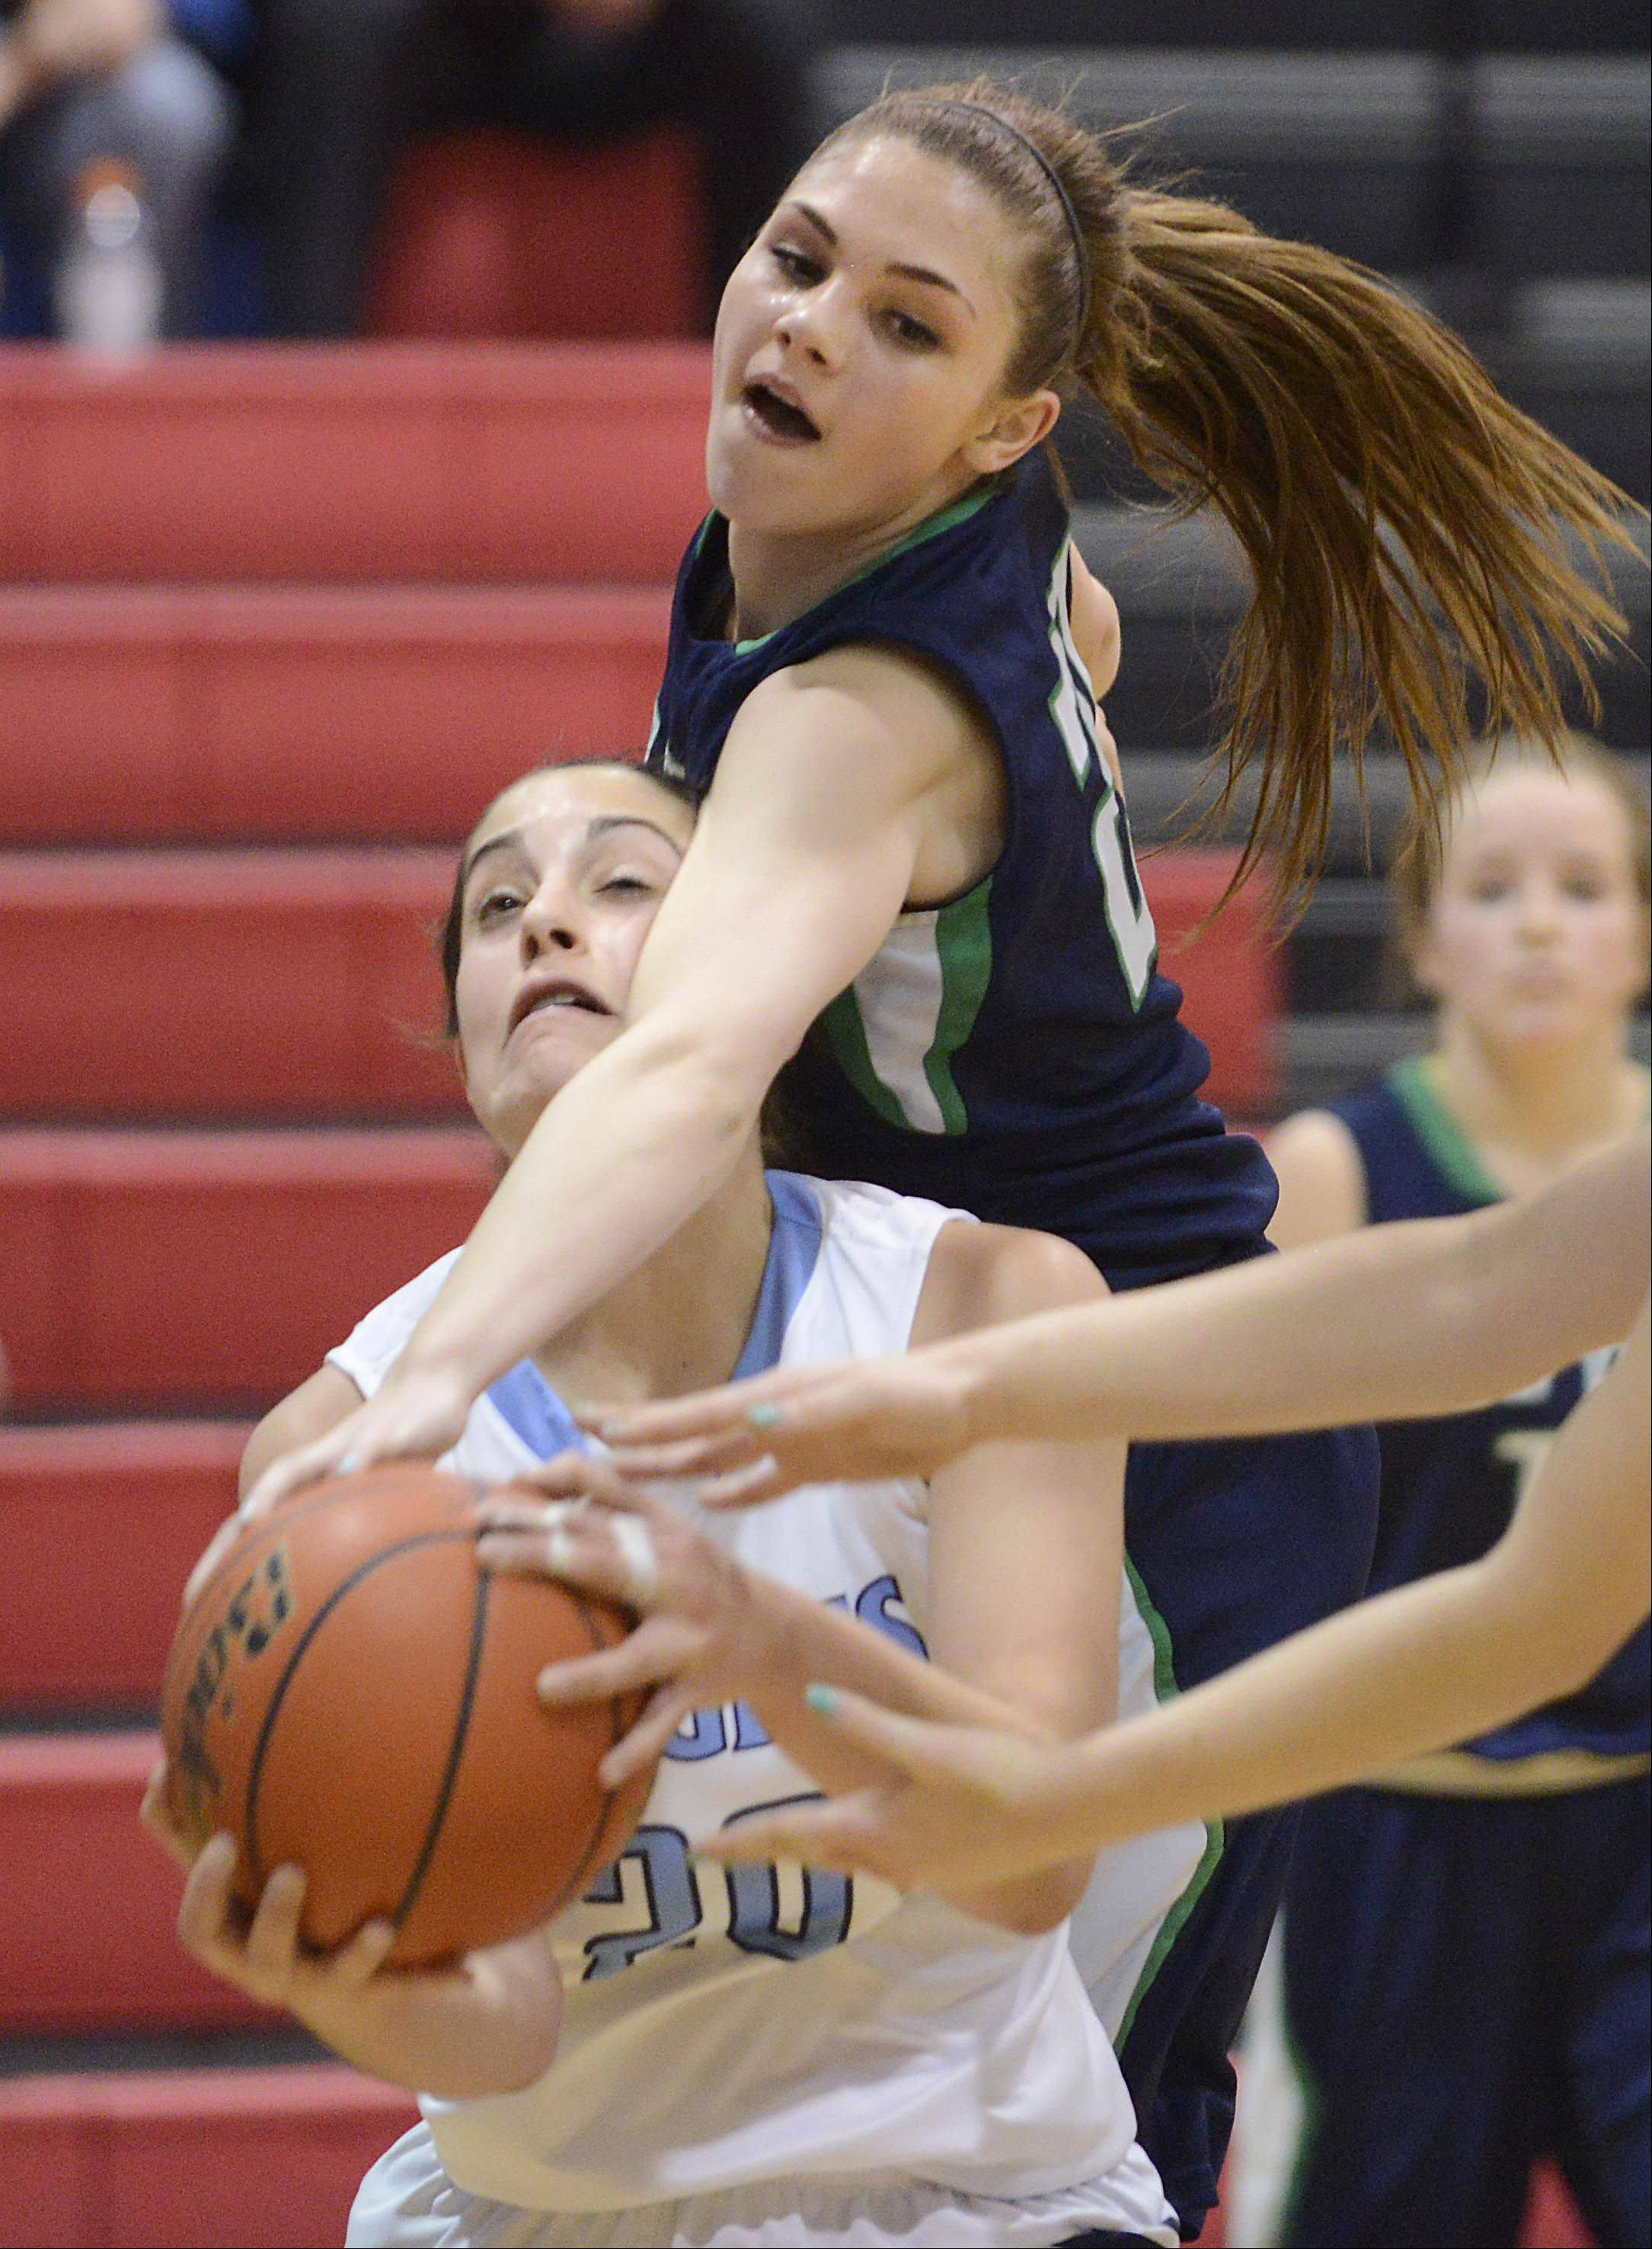 New Trier's Isabella Bosco fouls Prospect's Christina D'Anza in the championship game of the 31st Annual Charger Classic at Dundee-Crown on Monday.